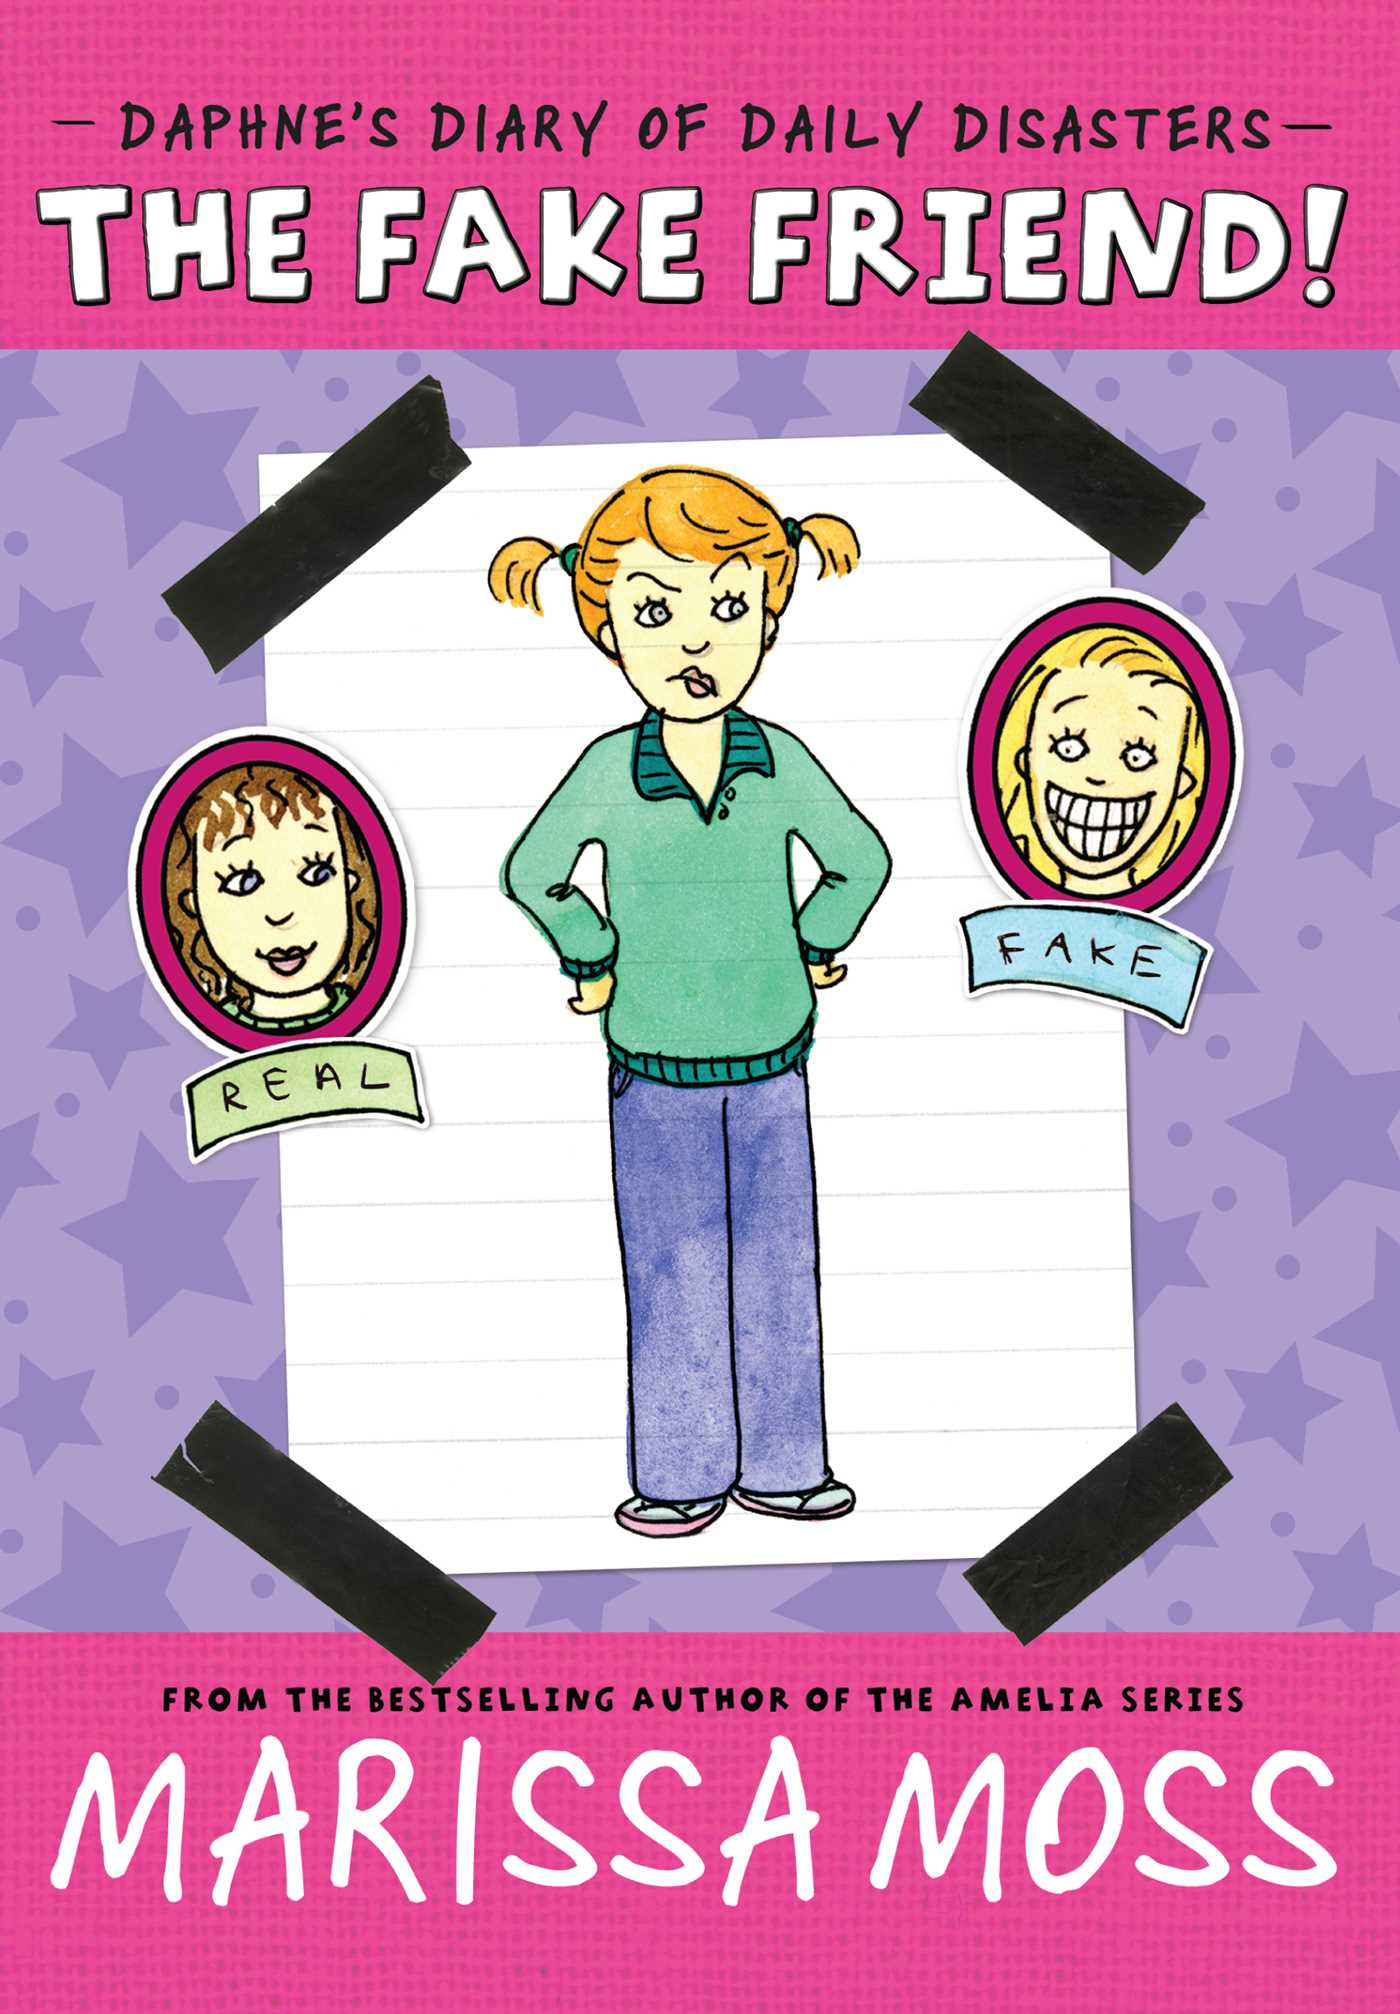 Middle clipart middle school friend. The fake book by